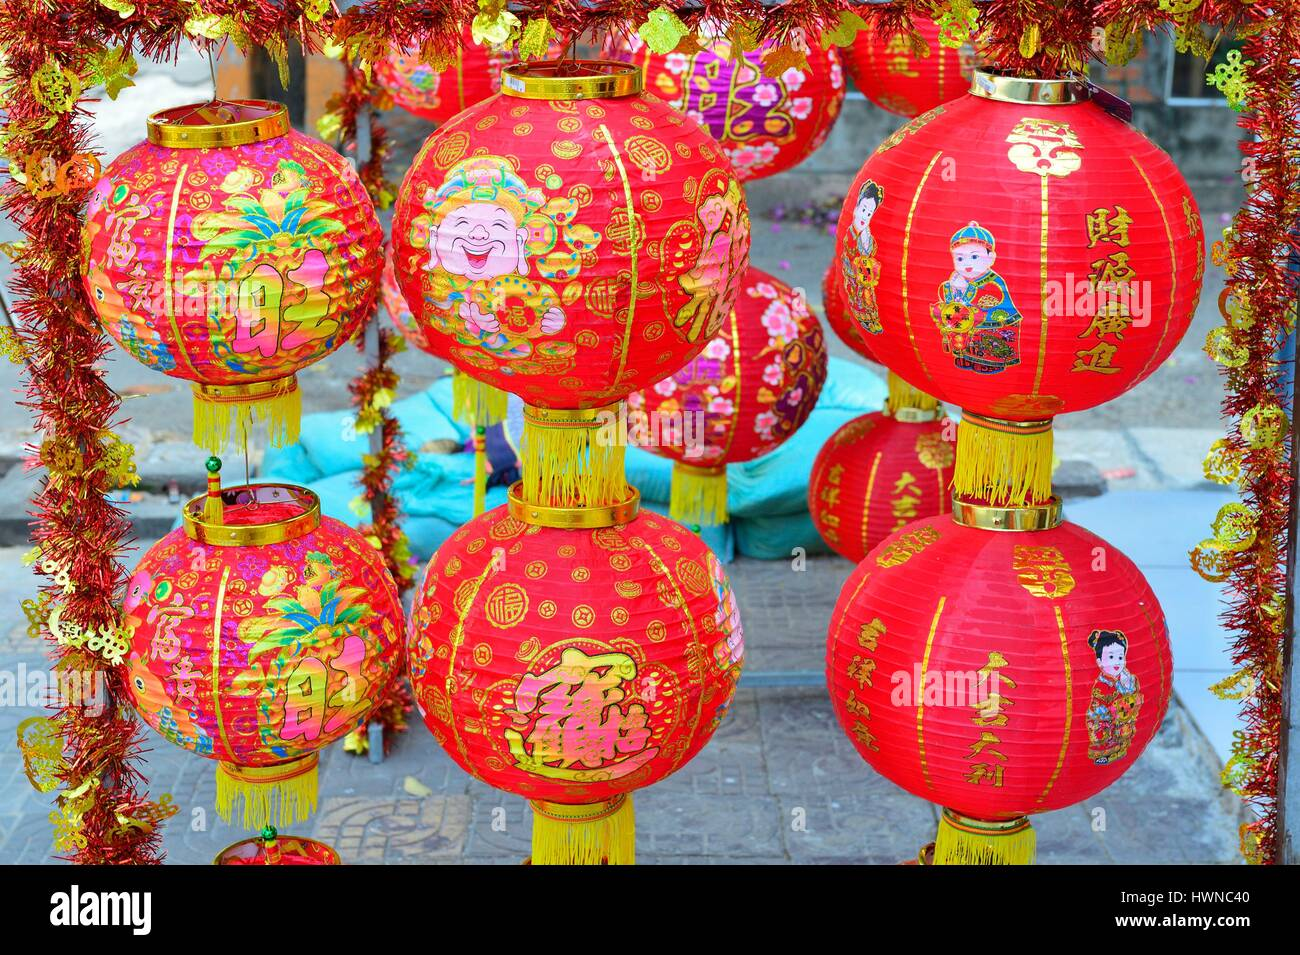 Cambodia, Phnom Penh, decorative lamps for Chinese New Year - Stock Image